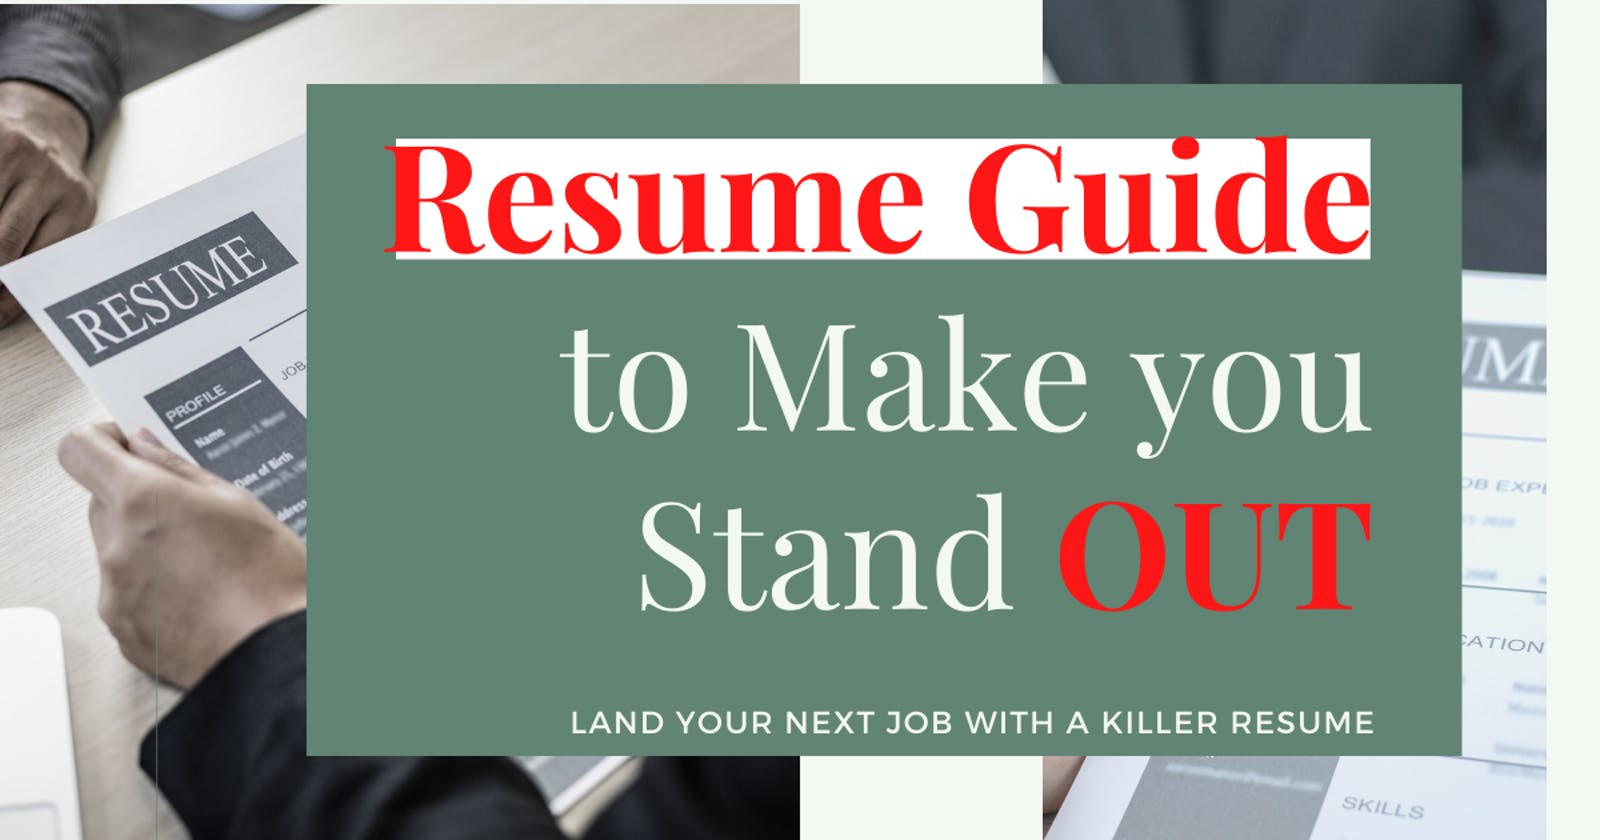 How To Write A Killer Resume & Stand Out in a Crowd